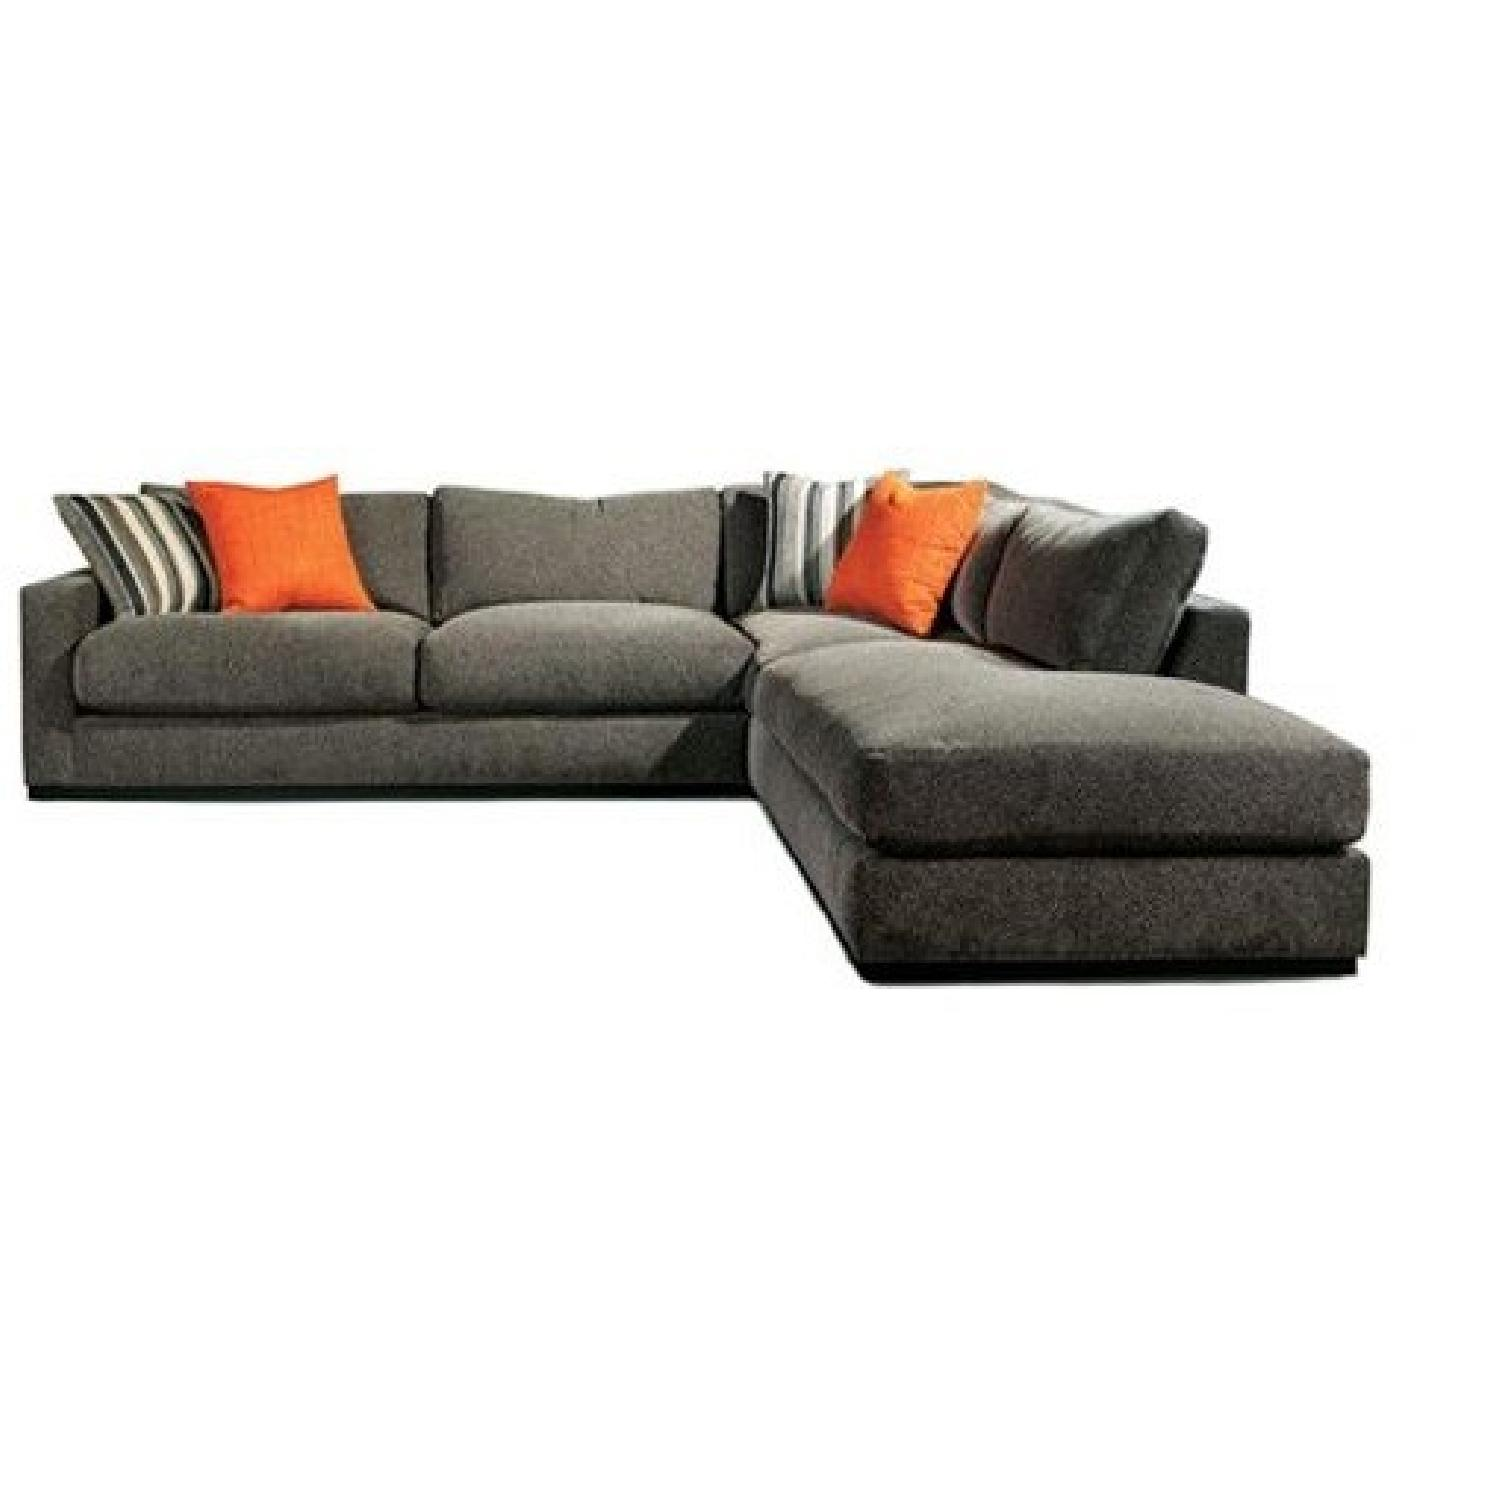 Thayer Coggin Mr Big Sectional Sofa ...